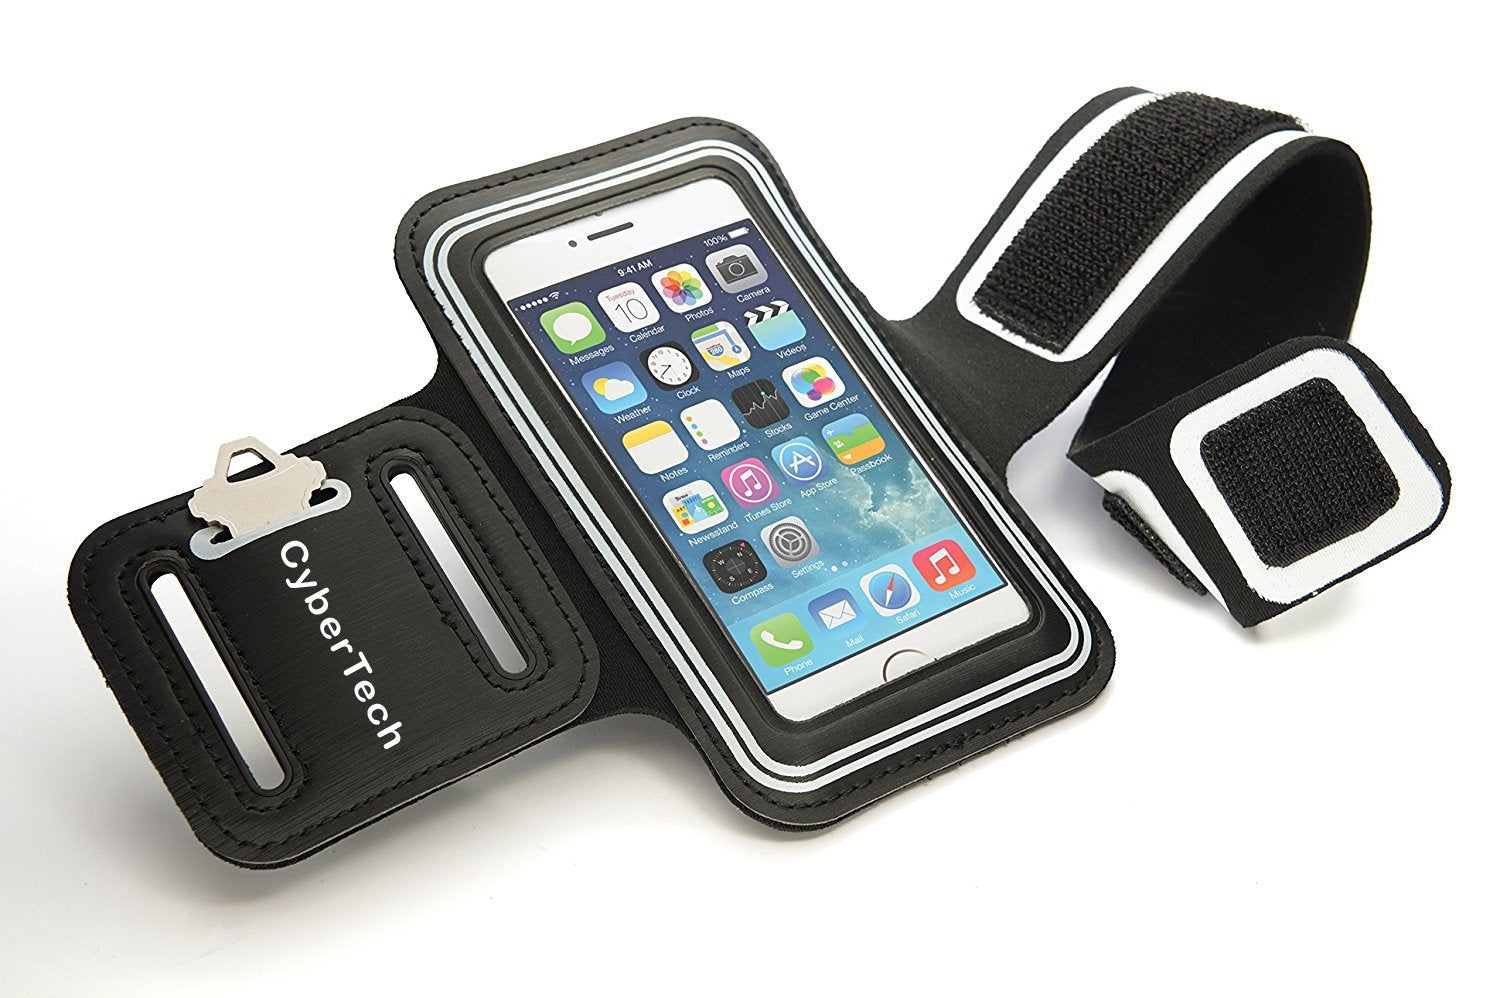 CyberTech Sport Armband Case for Samsung Galaxy S2 S3 S4 S5, iPhone 4 4S 5 5S 5C, HTC, Nokia Lumia 521 (White)